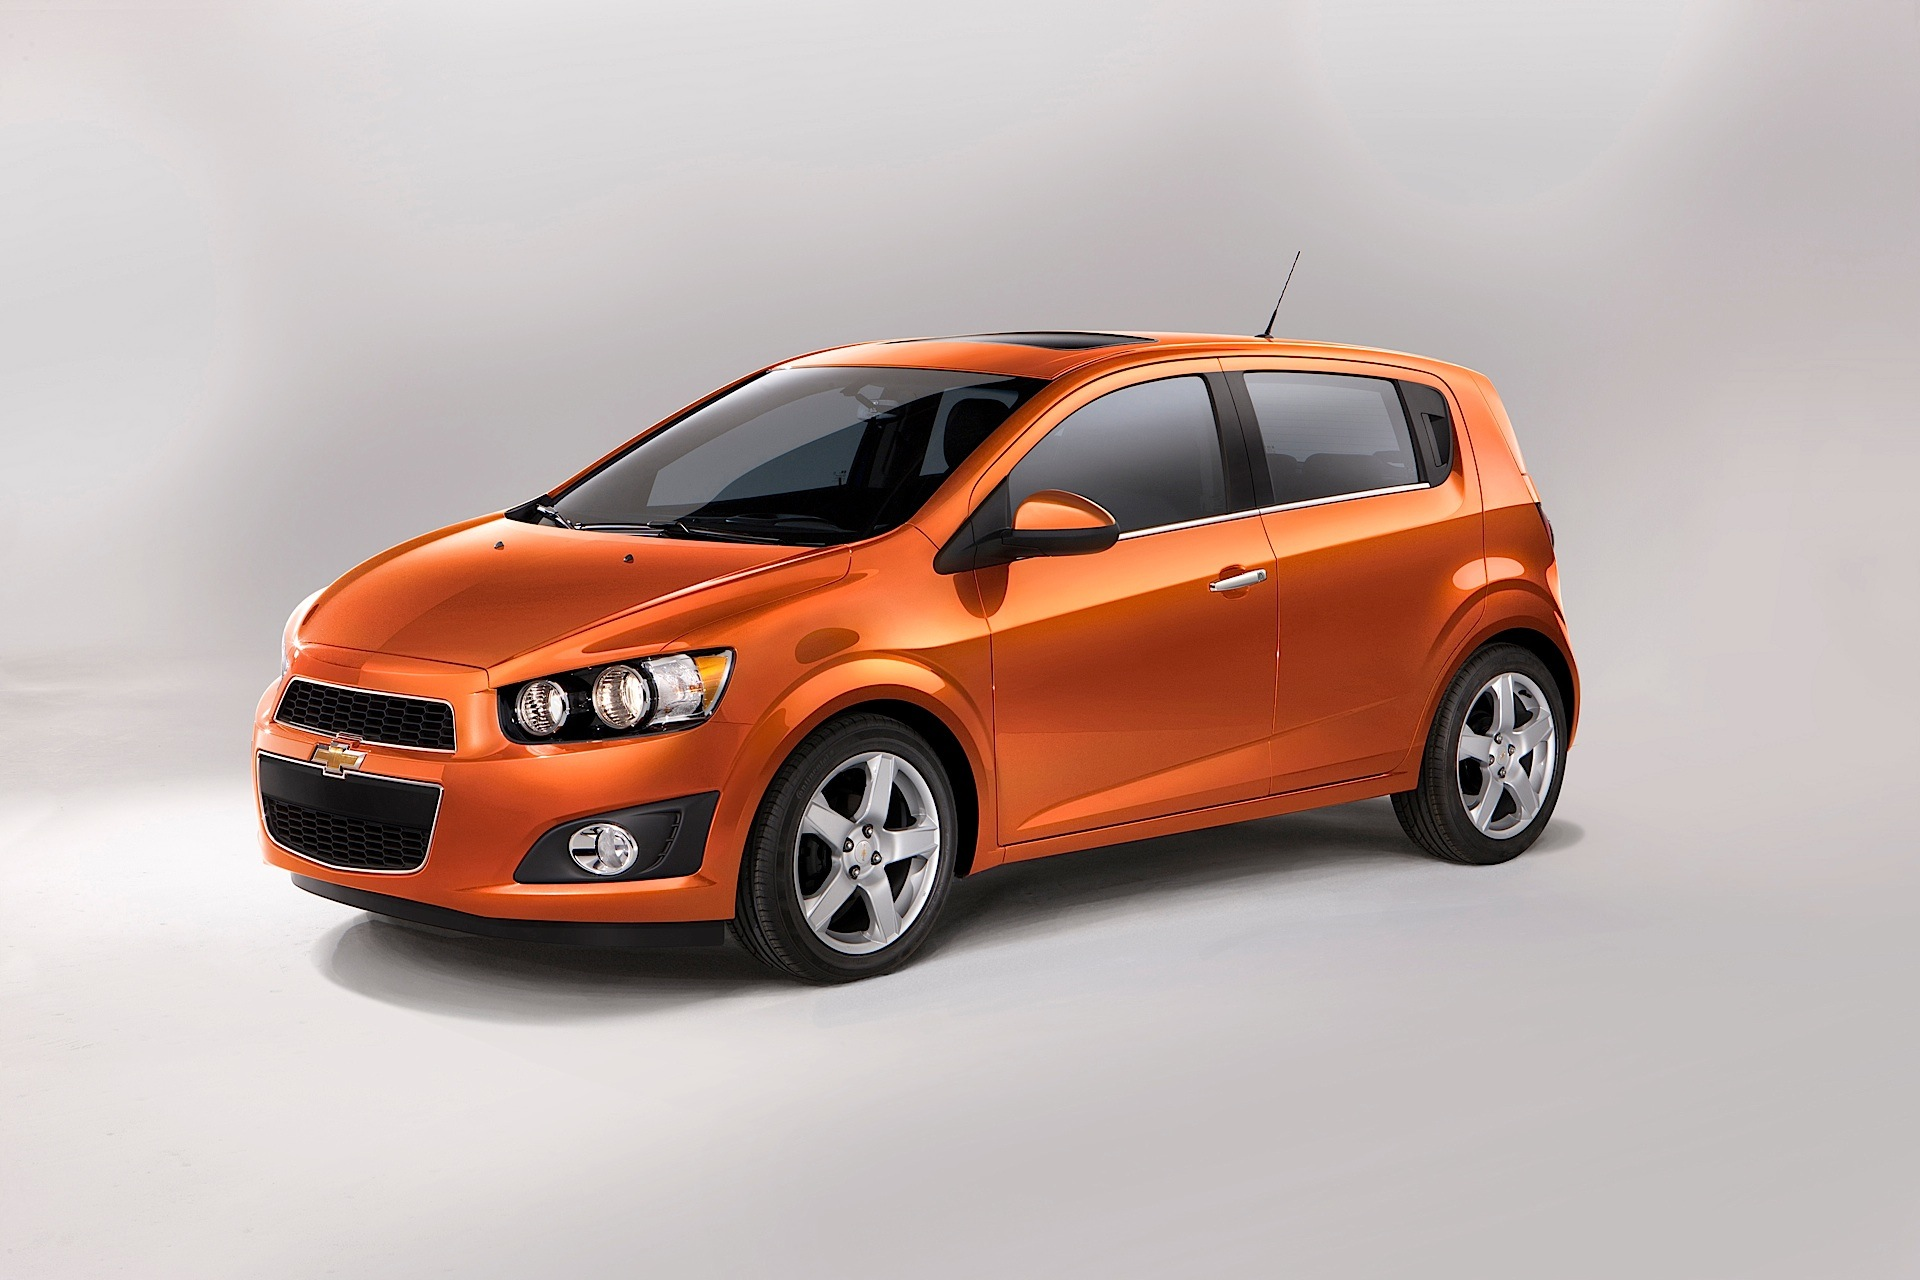 Chevy Sonic Hatchback >> CHEVROLET Sonic Hatchback 5 Doors - 2011, 2012, 2013, 2014 ...